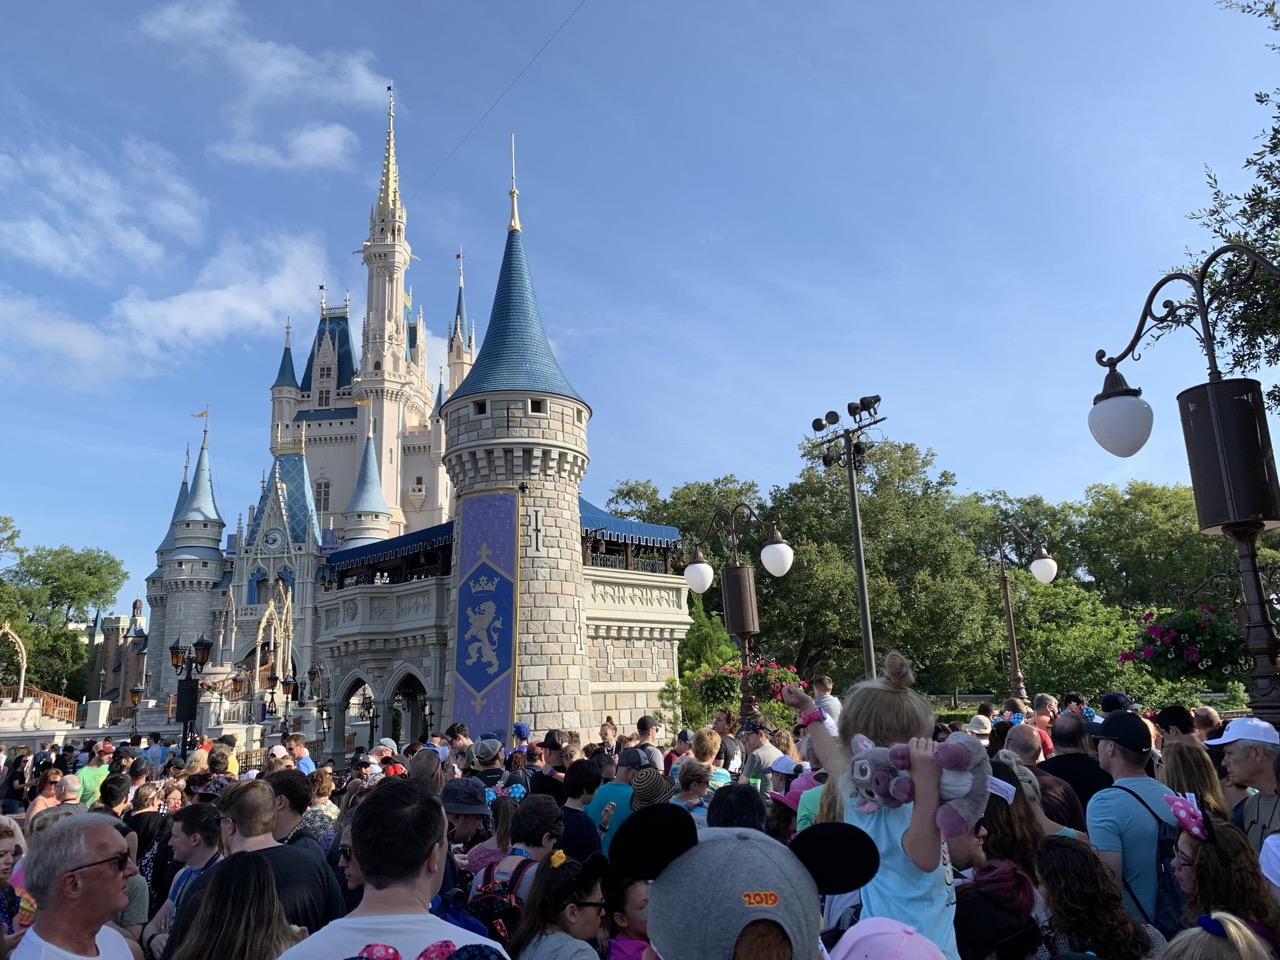 disney world trip report early summer 2019 day five 14 rope drop 7dmt.jpeg